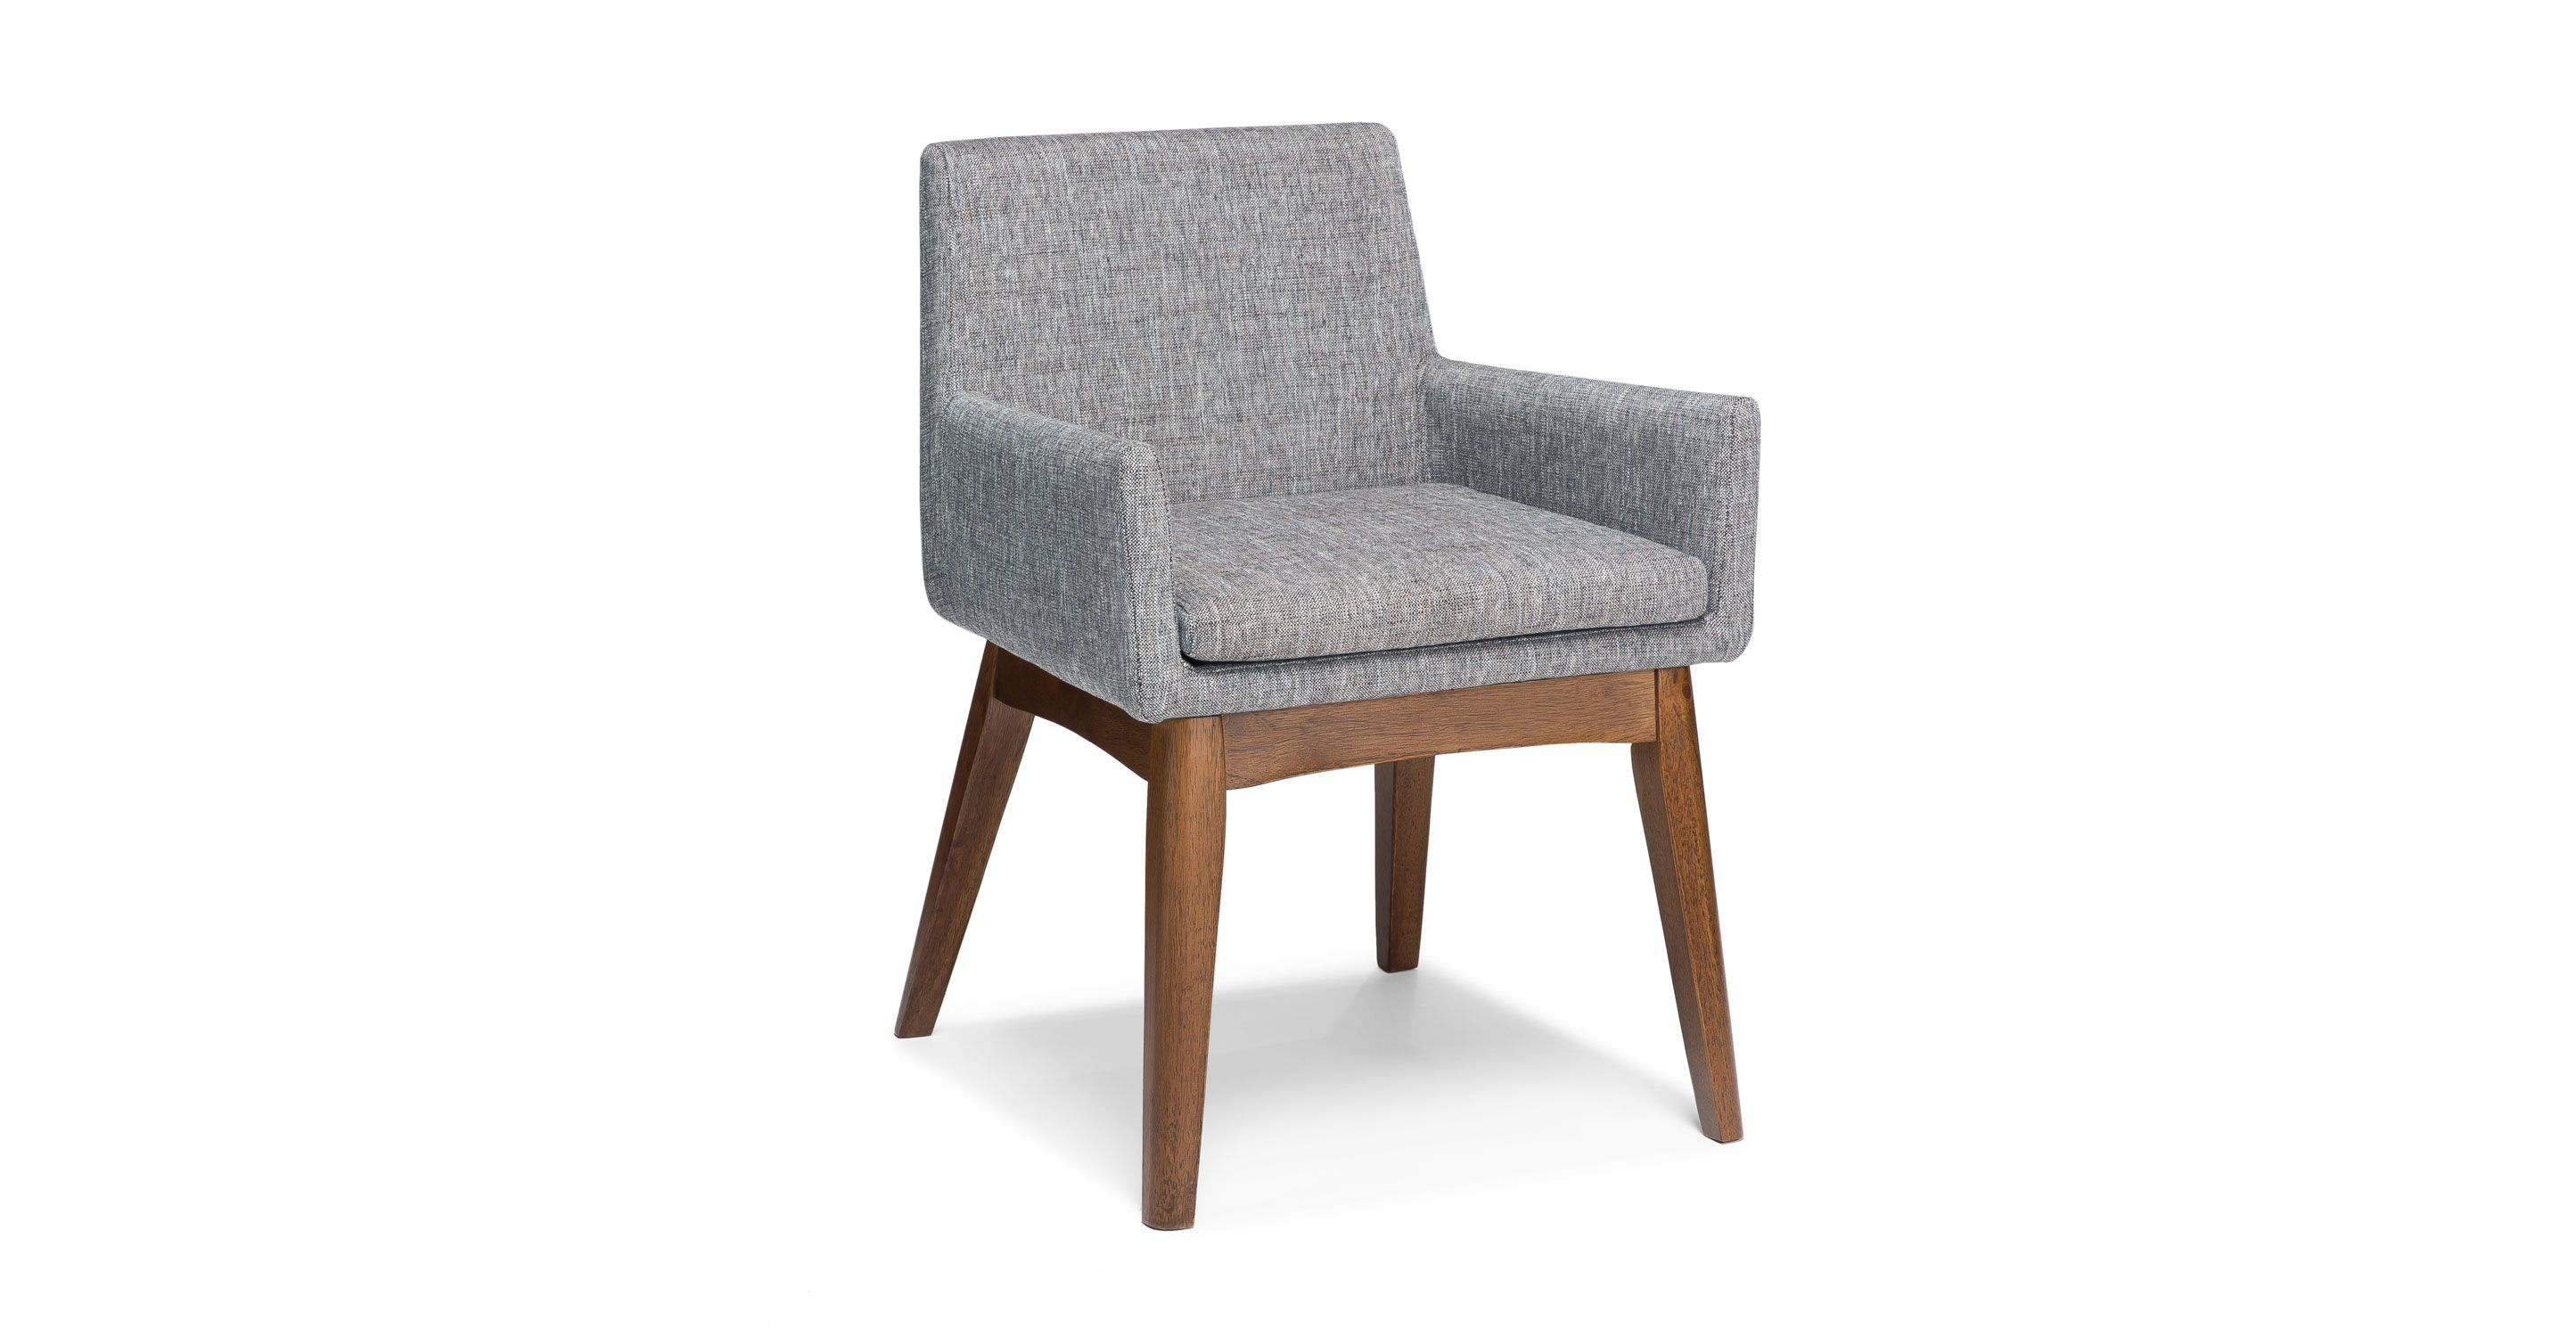 2x Gray Dining Armchair in Brown Wood Upholstered